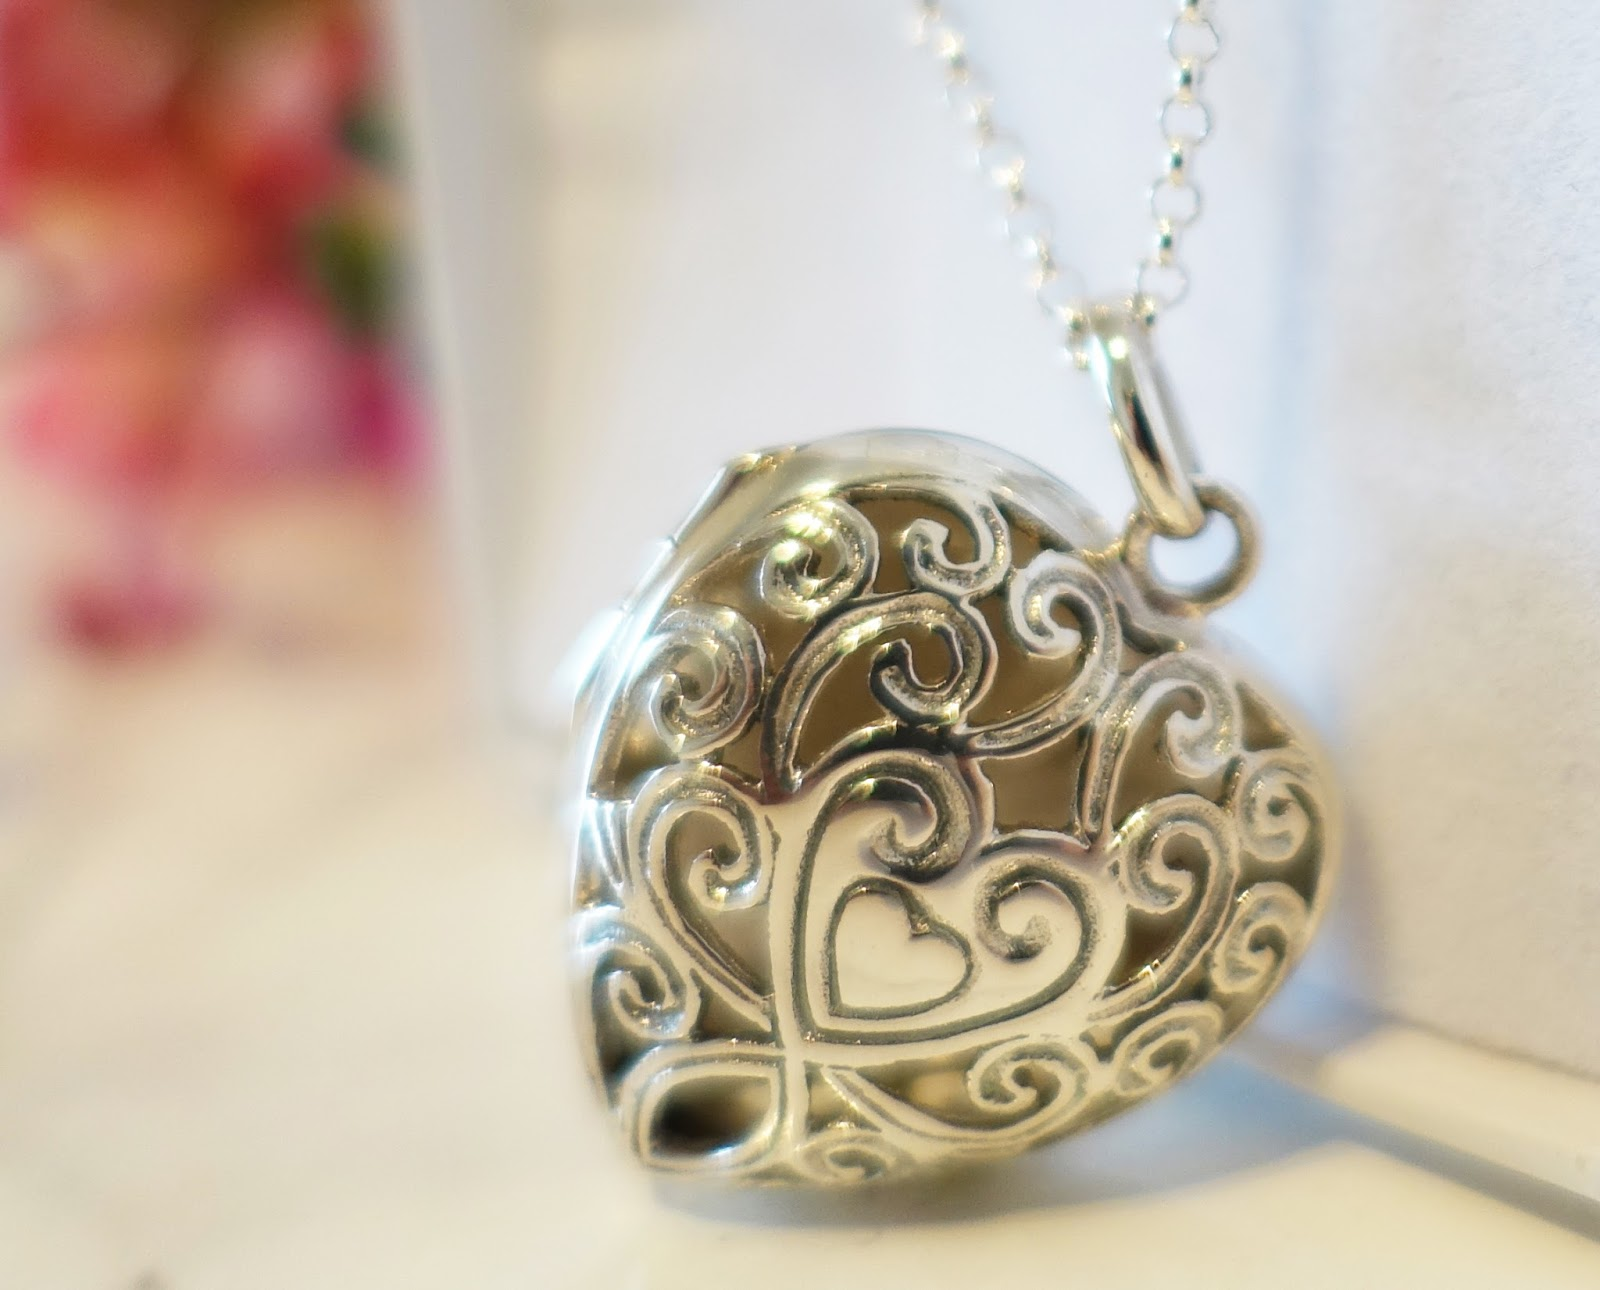 Image showing a vintage style silver locket on a chain